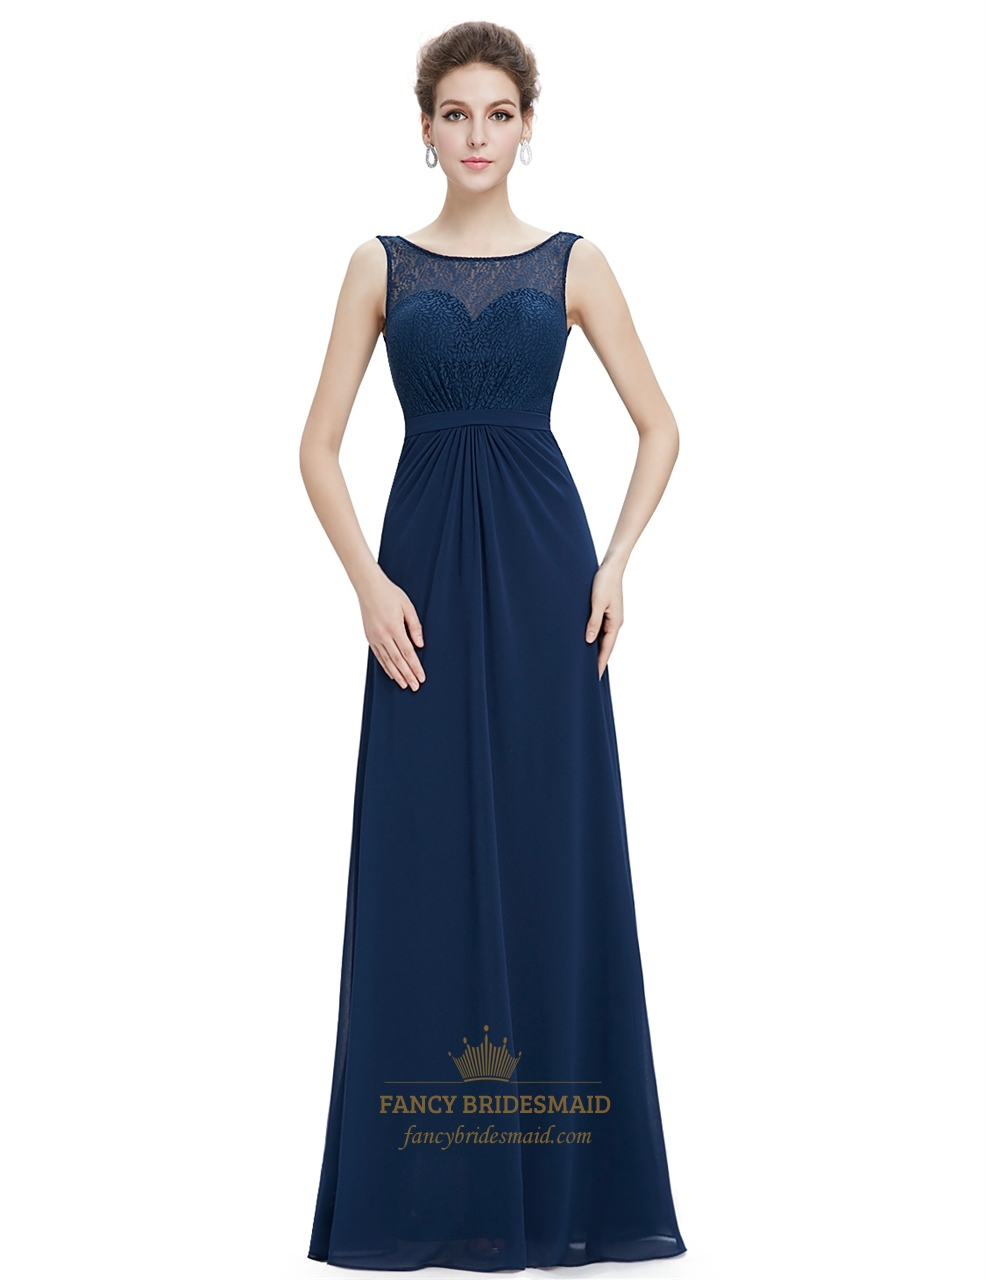 2019 year looks- Blue navy prom dresses long